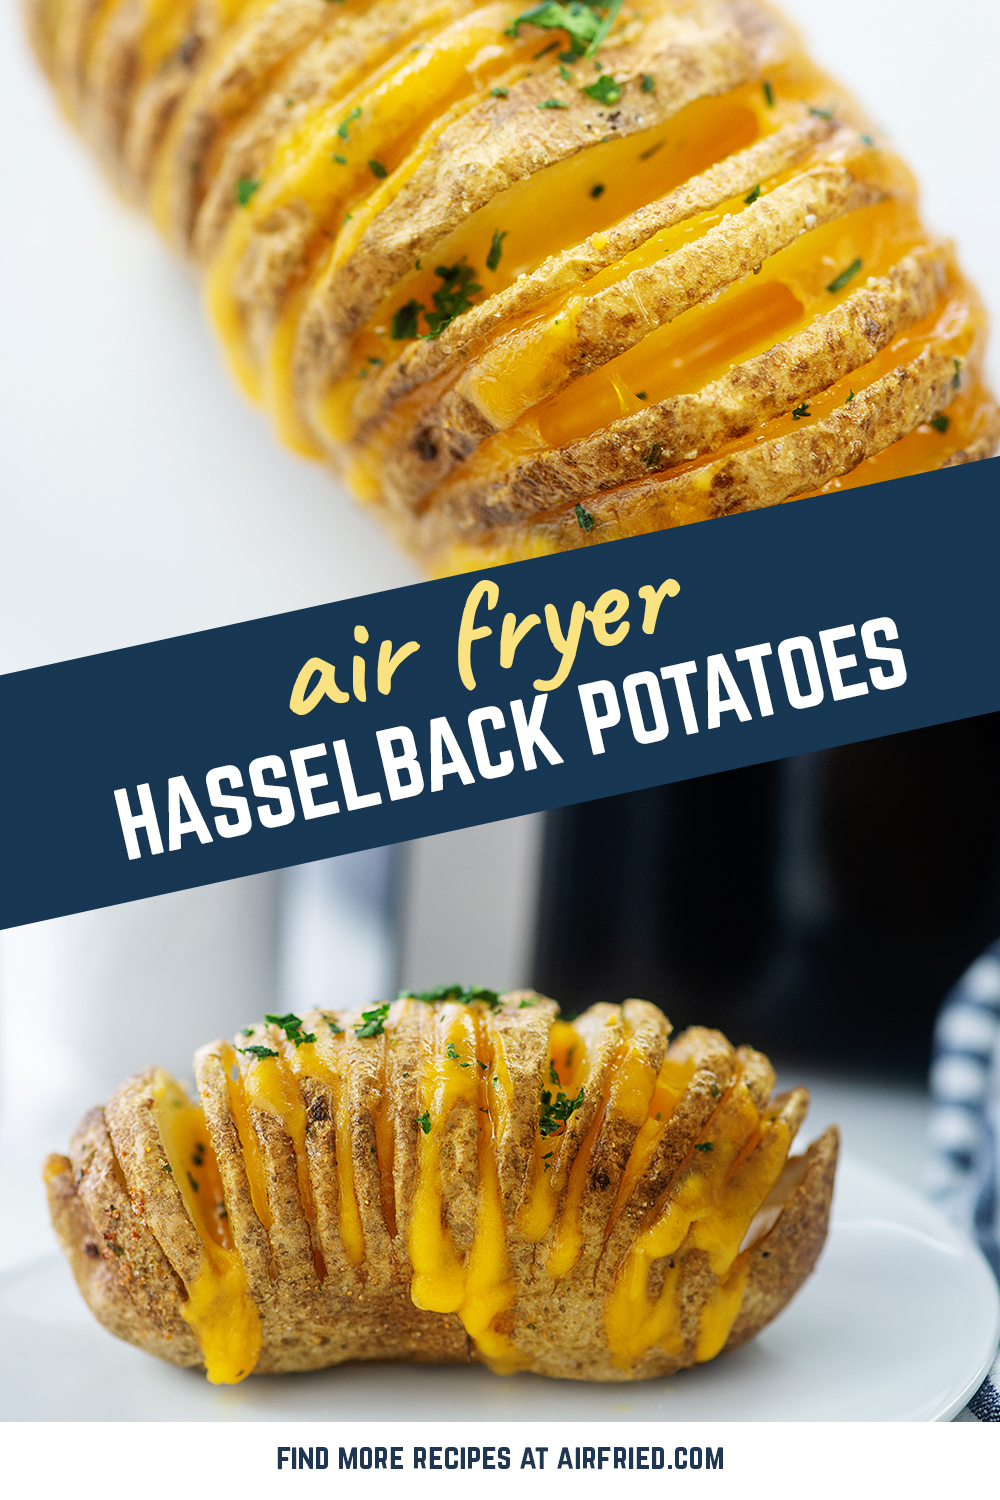 Easy cheesy hasselback potatoes! These cook in the air fryer in about 45 minutes.